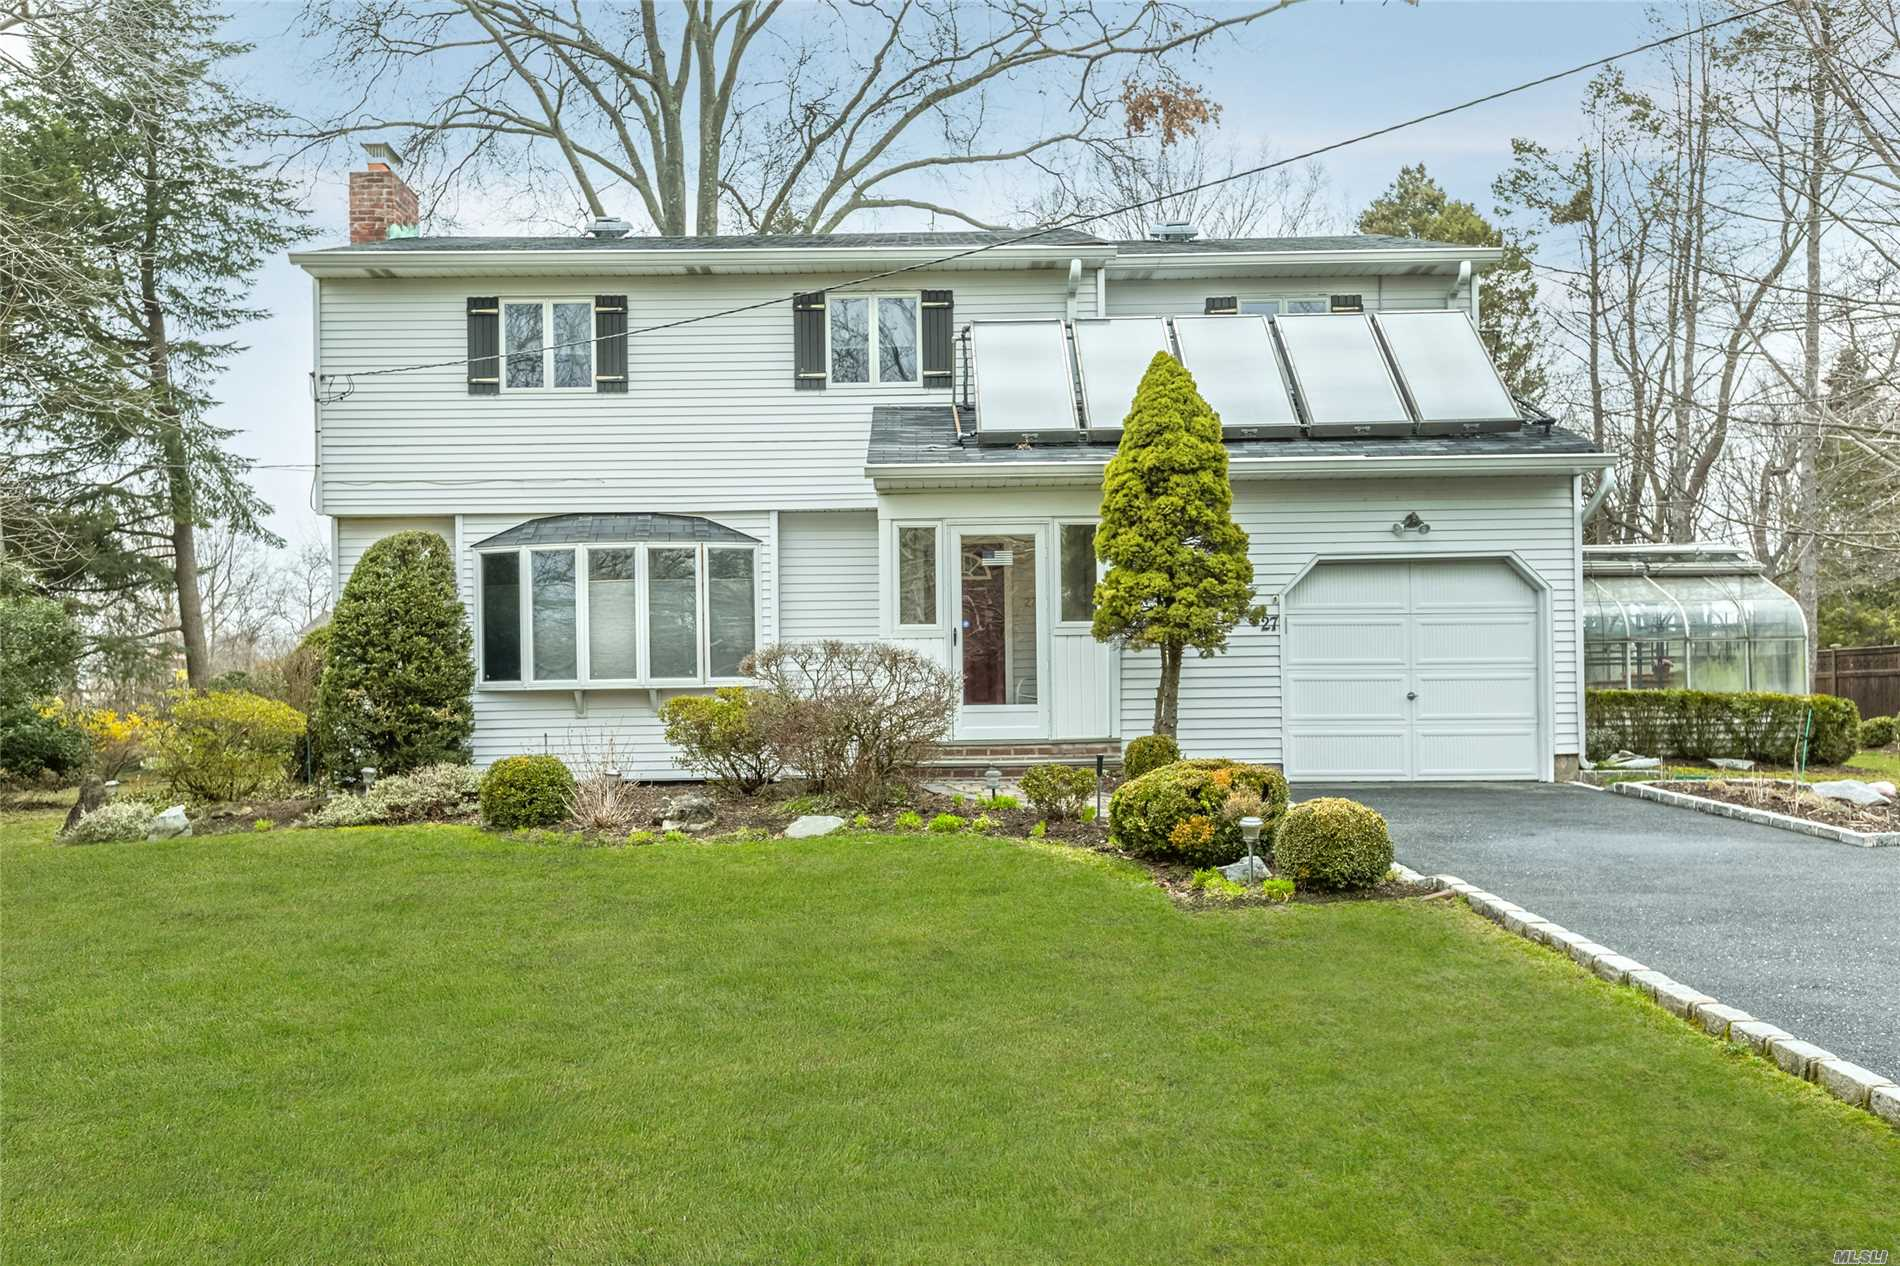 27 Bowdon Rd - Greenlawn, New York